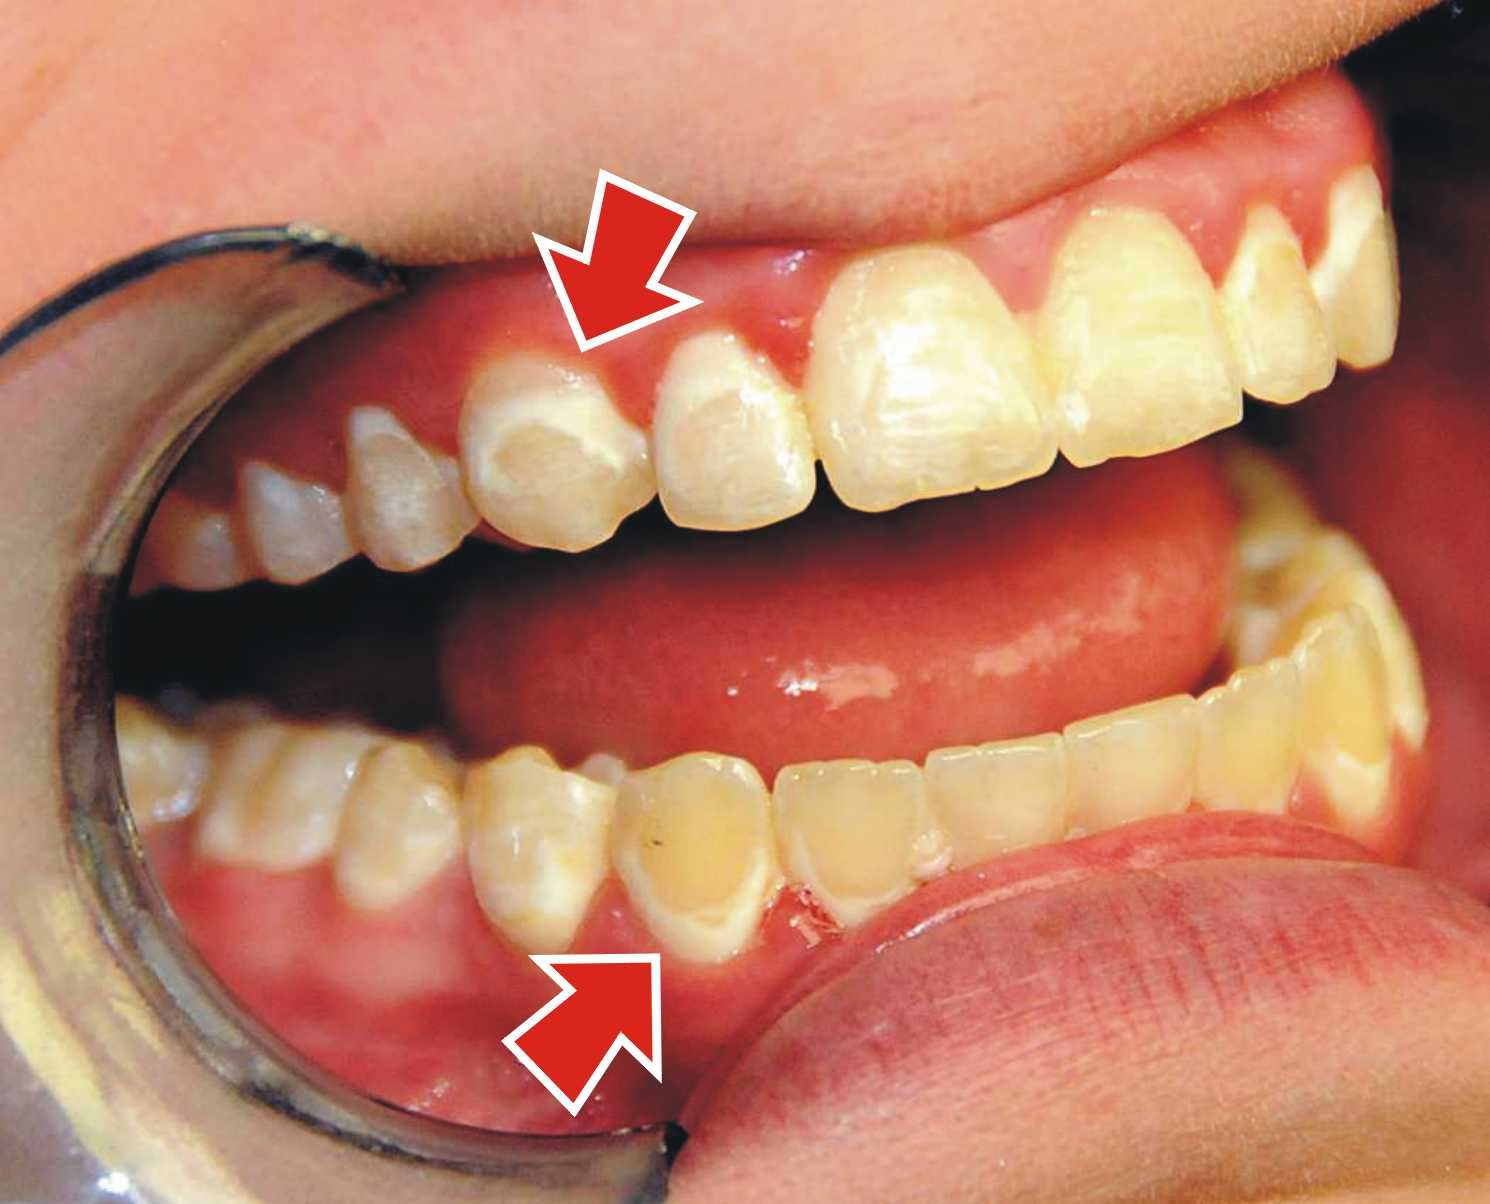 White Spots After Braces if teeth are not brushed properly